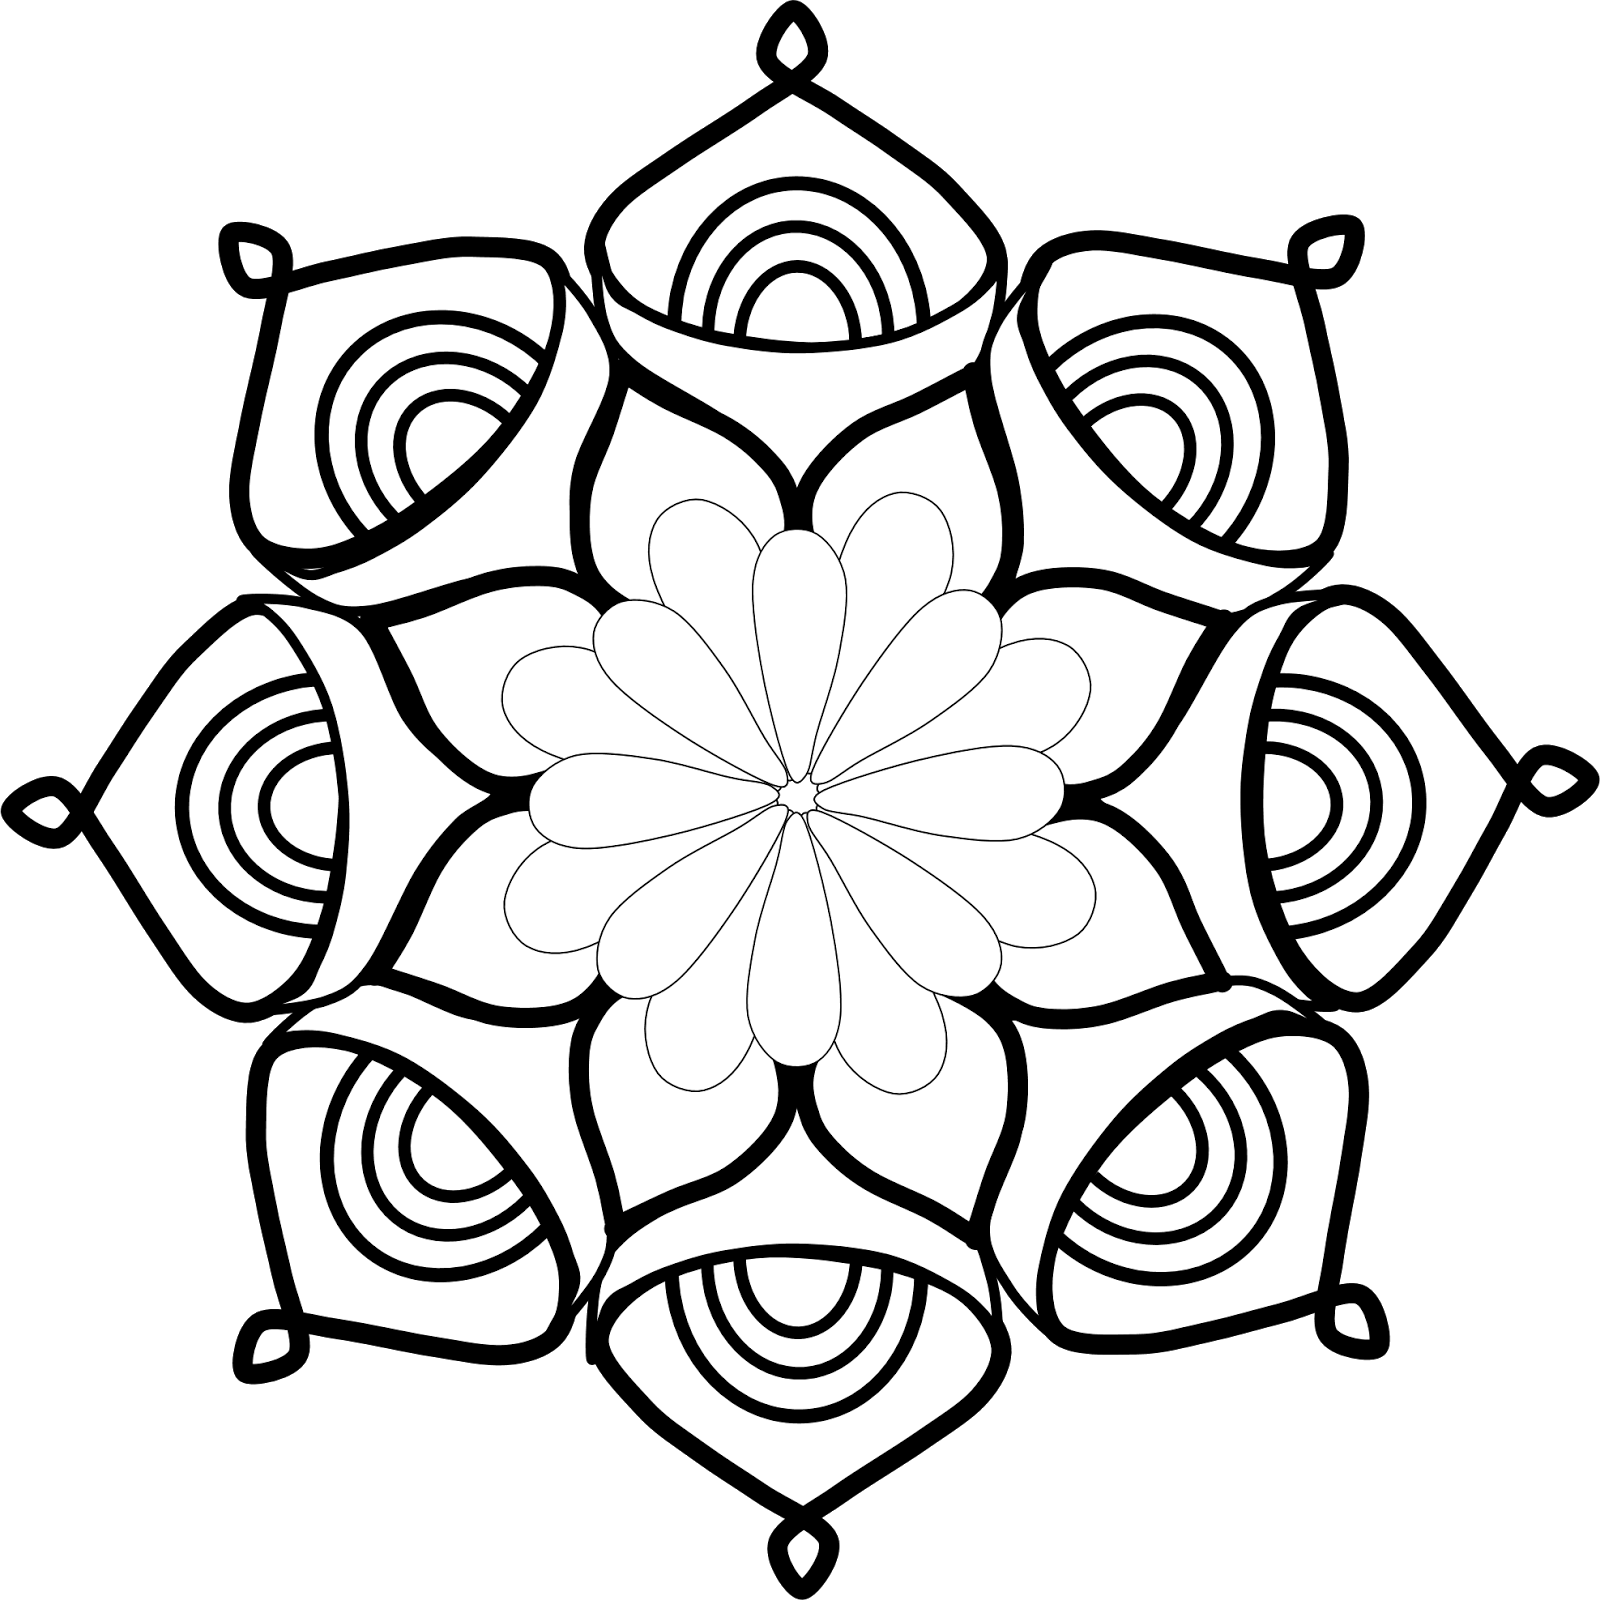 Mandala clipart.  collection of free